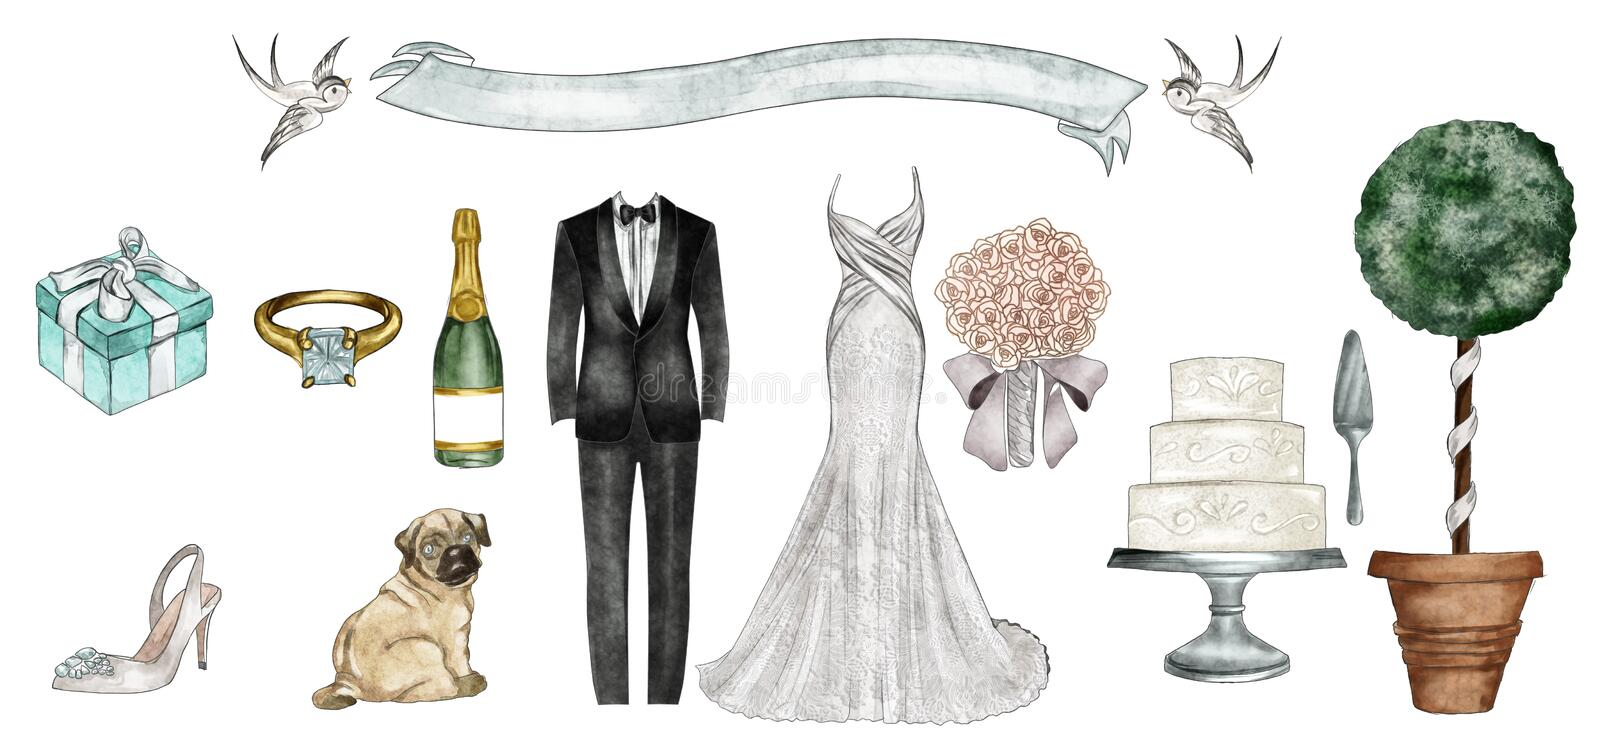 Watercolor Fashion Illustration - Wedding outfit set. Cake and accessories royalty free illustration